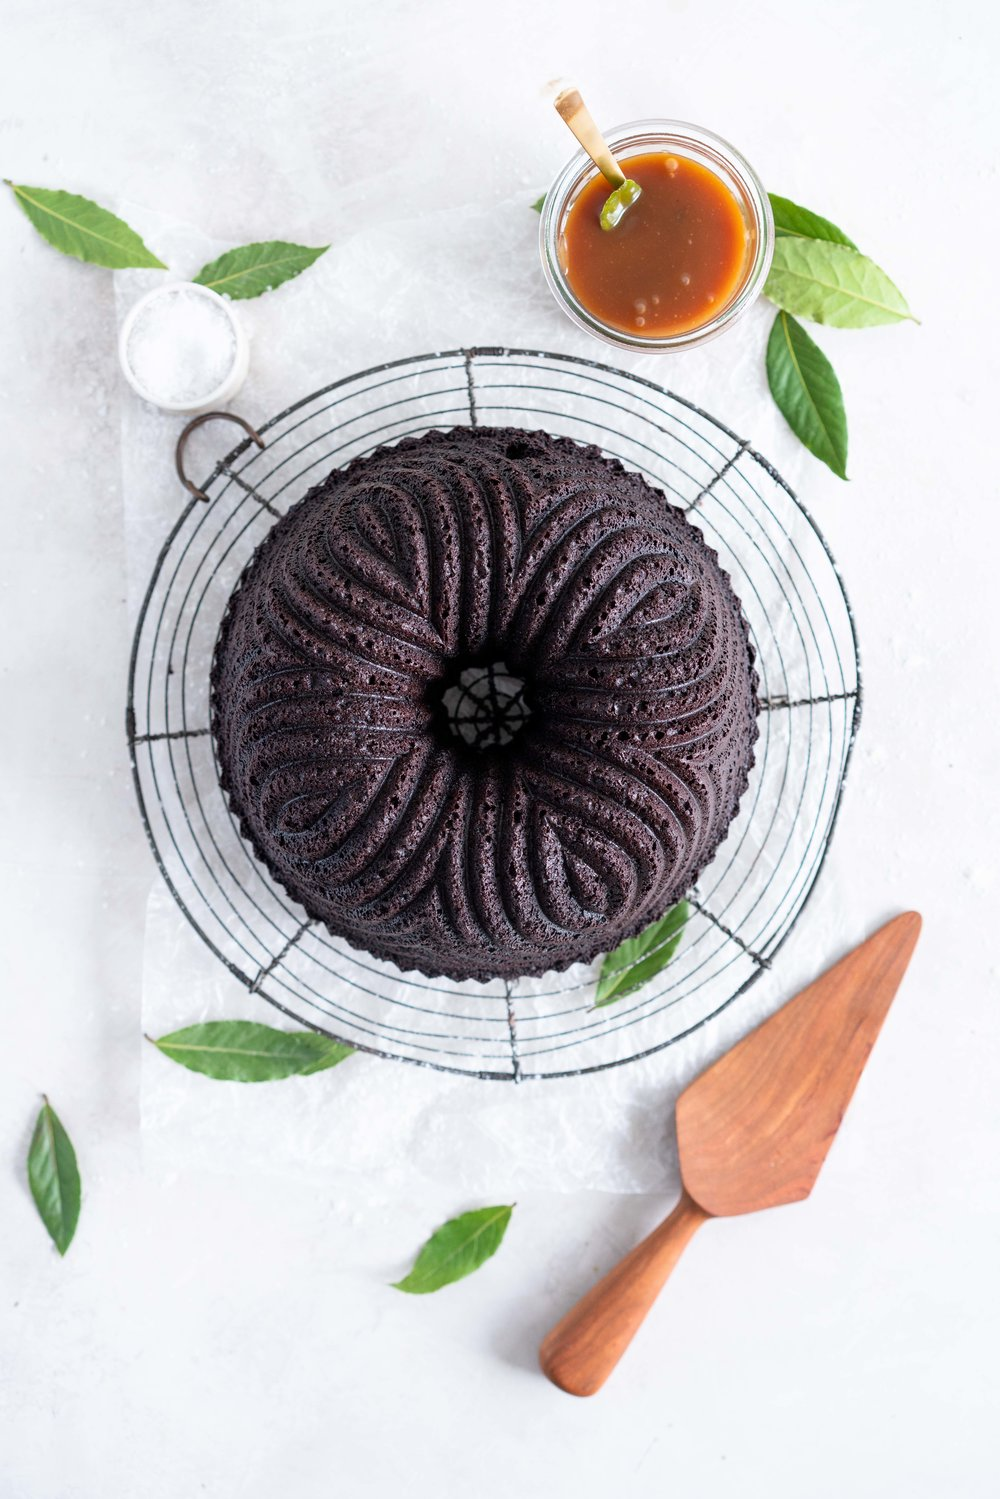 One Bowl Devil's food bundt cake with bay leaf caramel - a dense, moist chocolate bundt cake is loaded up with a lightly infused bay caramel. The cake is amazing alone, but with the caramel it is the perfect match. #devilsfoodcake #chocolatebundtcake #baycaramel